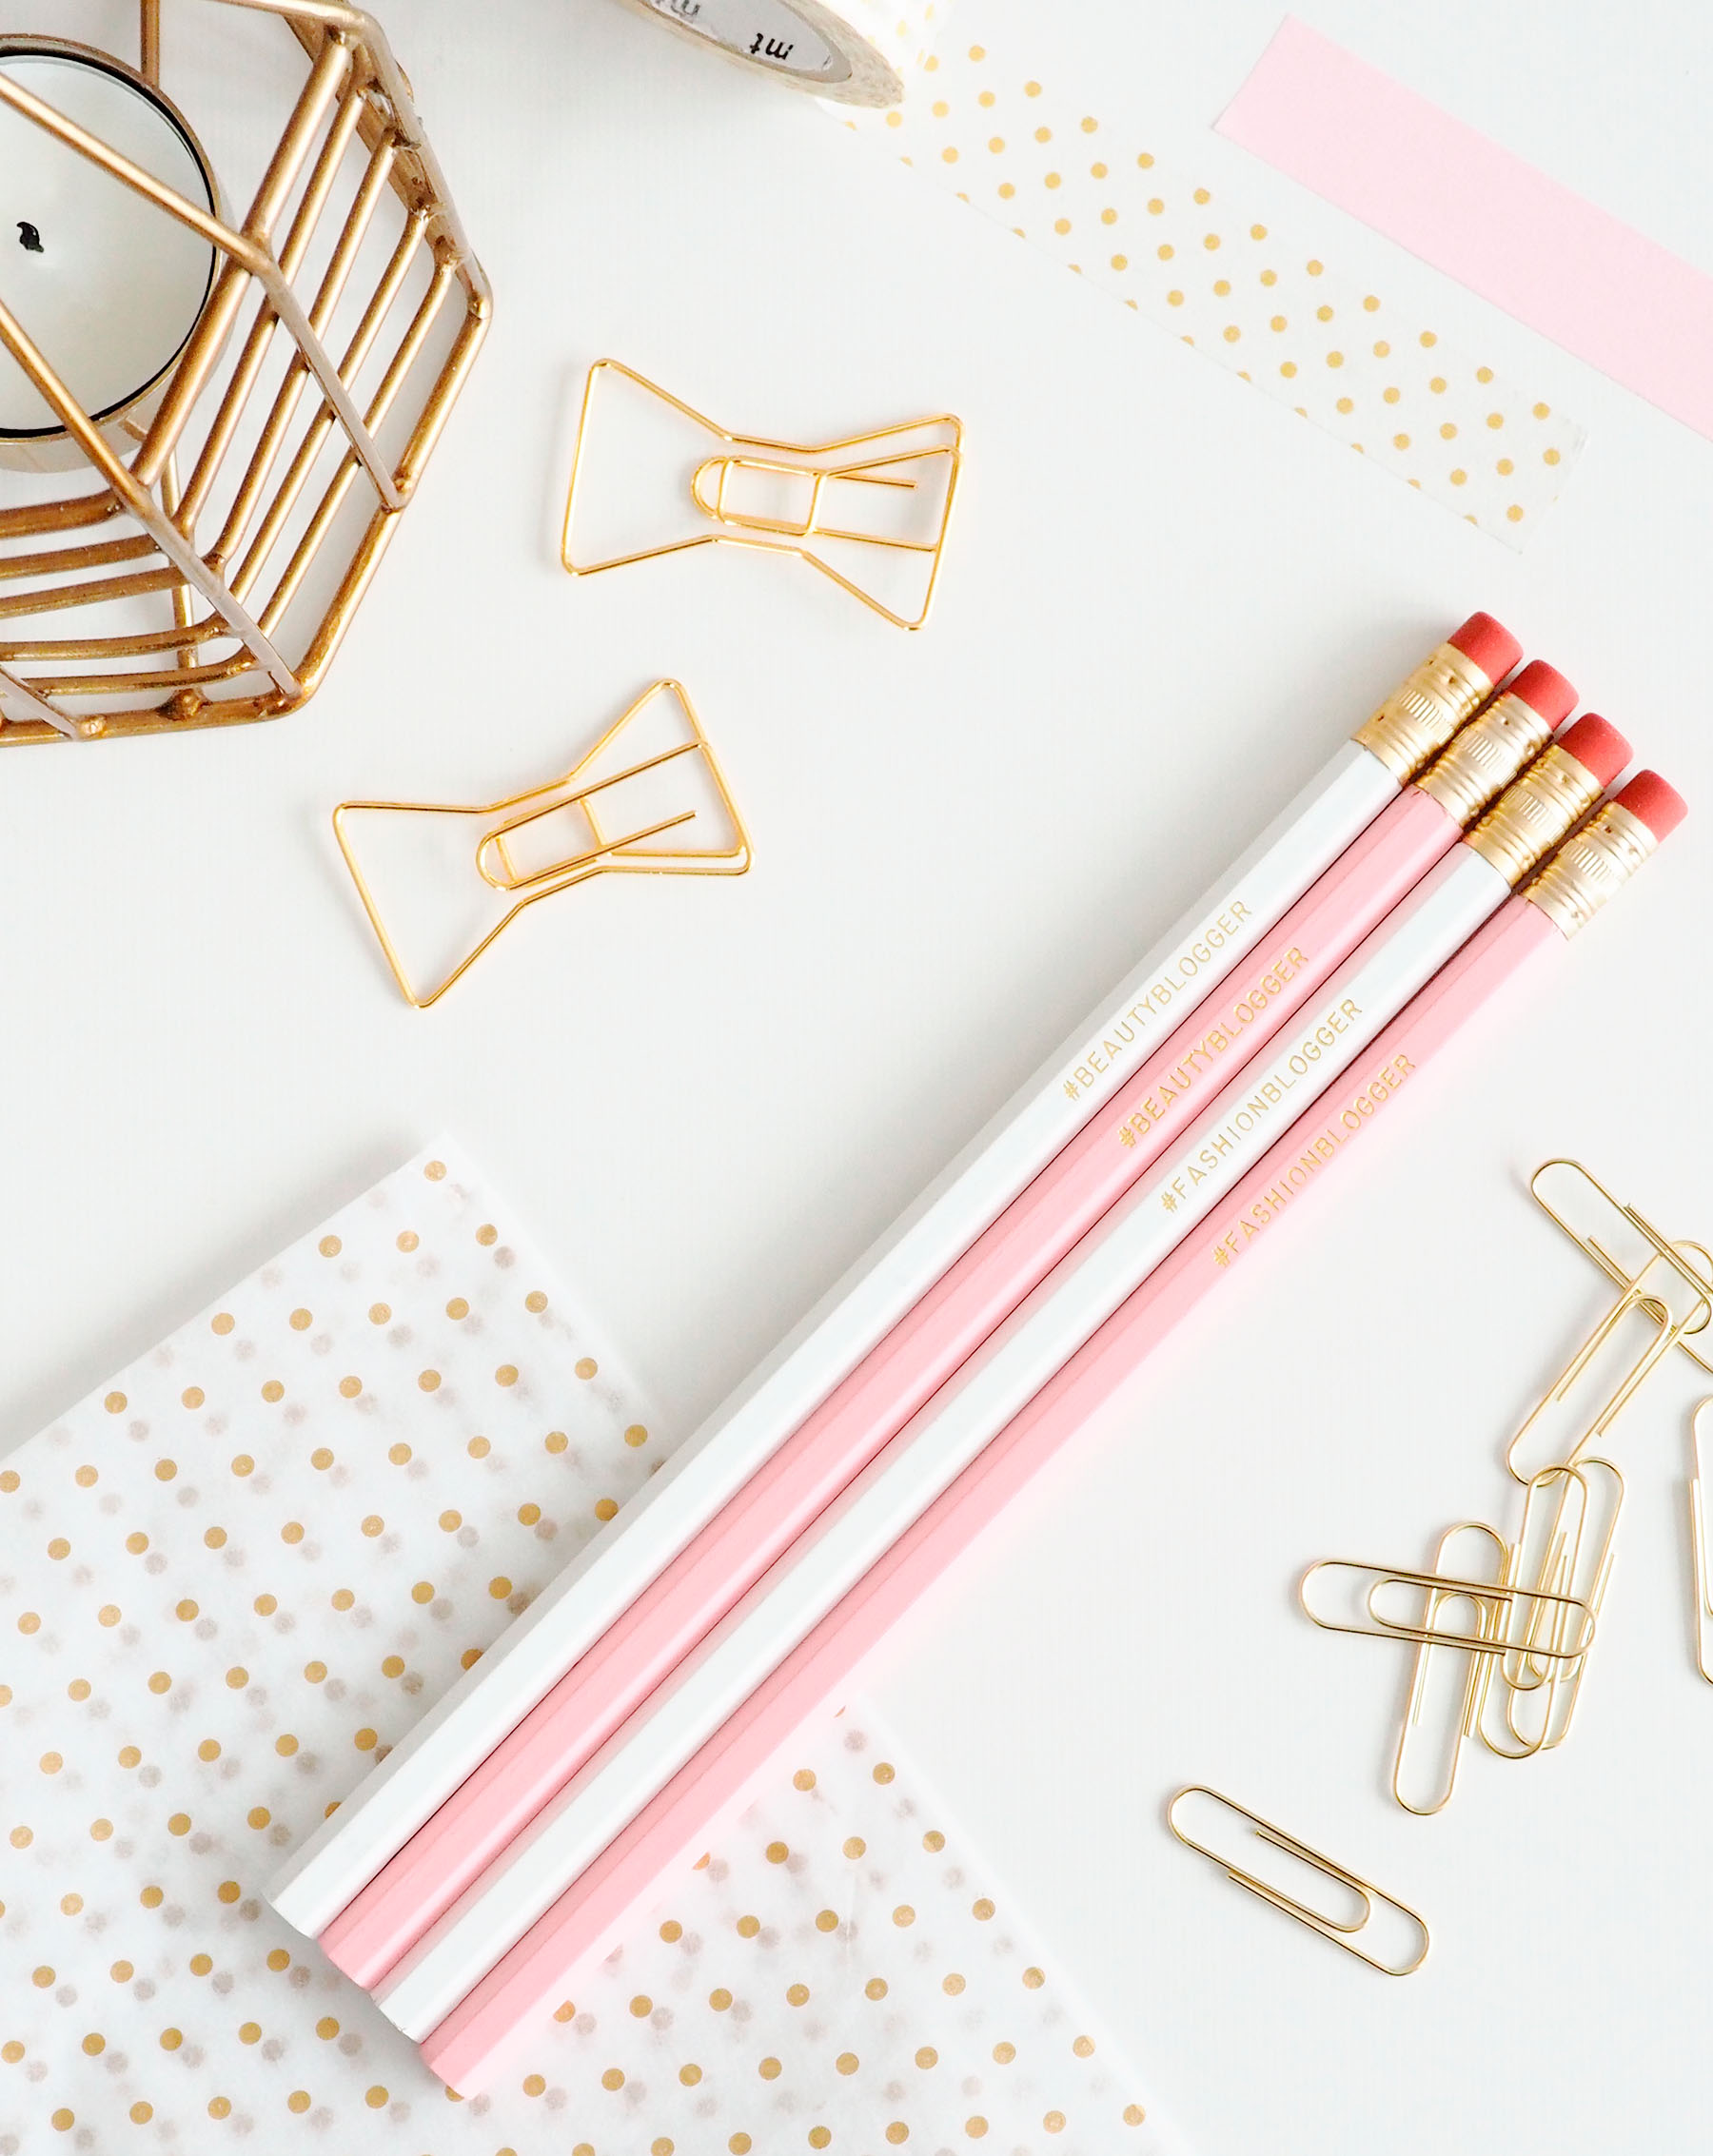 PaperChicCo pencils sets